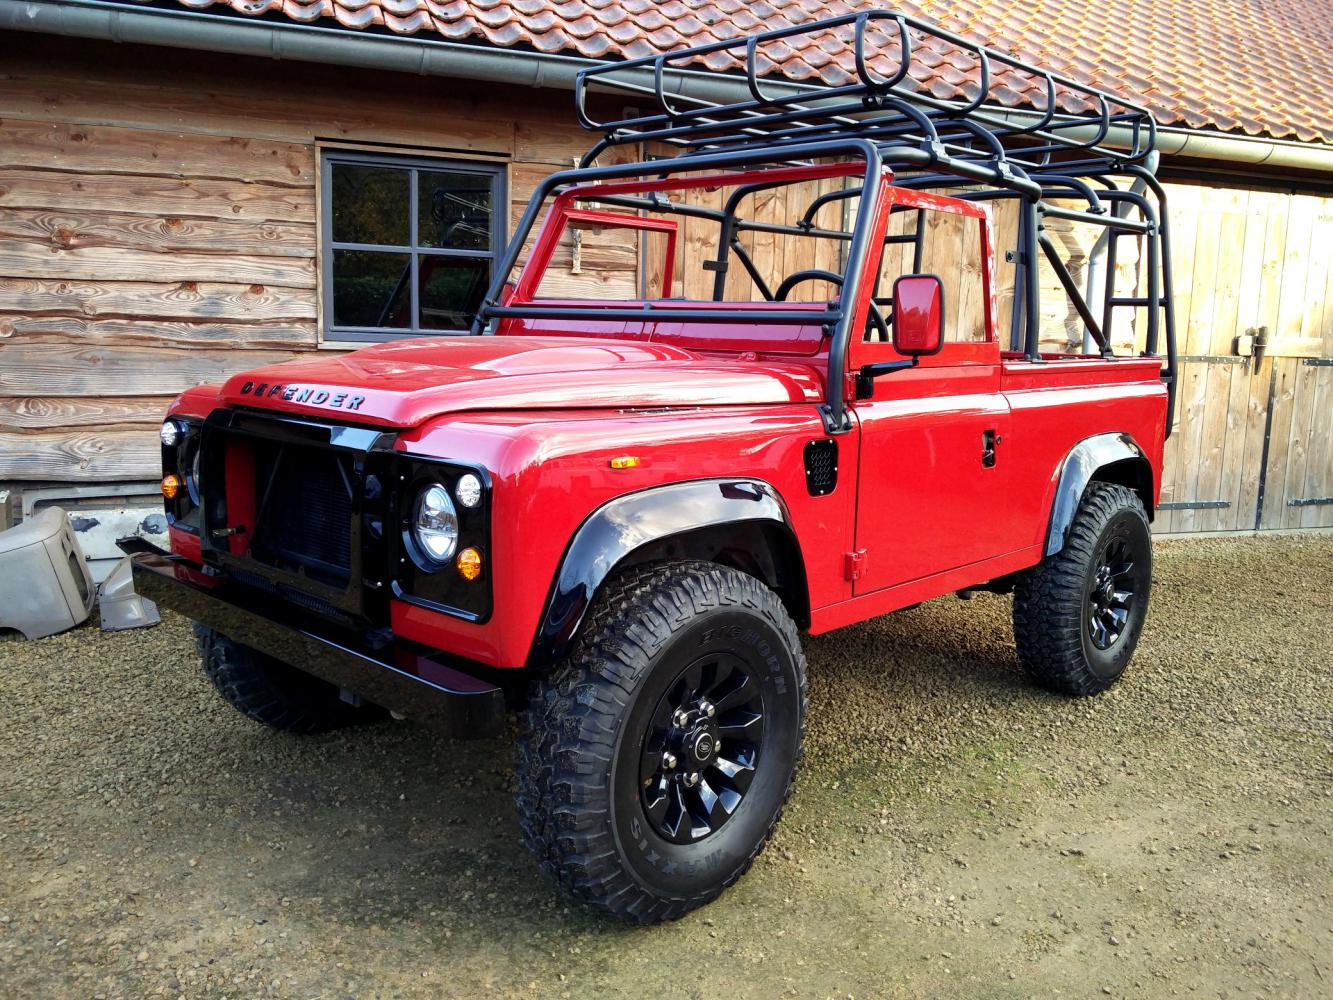 Click image for larger version  Name:1992 LR LHD Defender 90 Red 200 Tdi A day 10 left front.jpg Views:168 Size:299.0 KB ID:322377